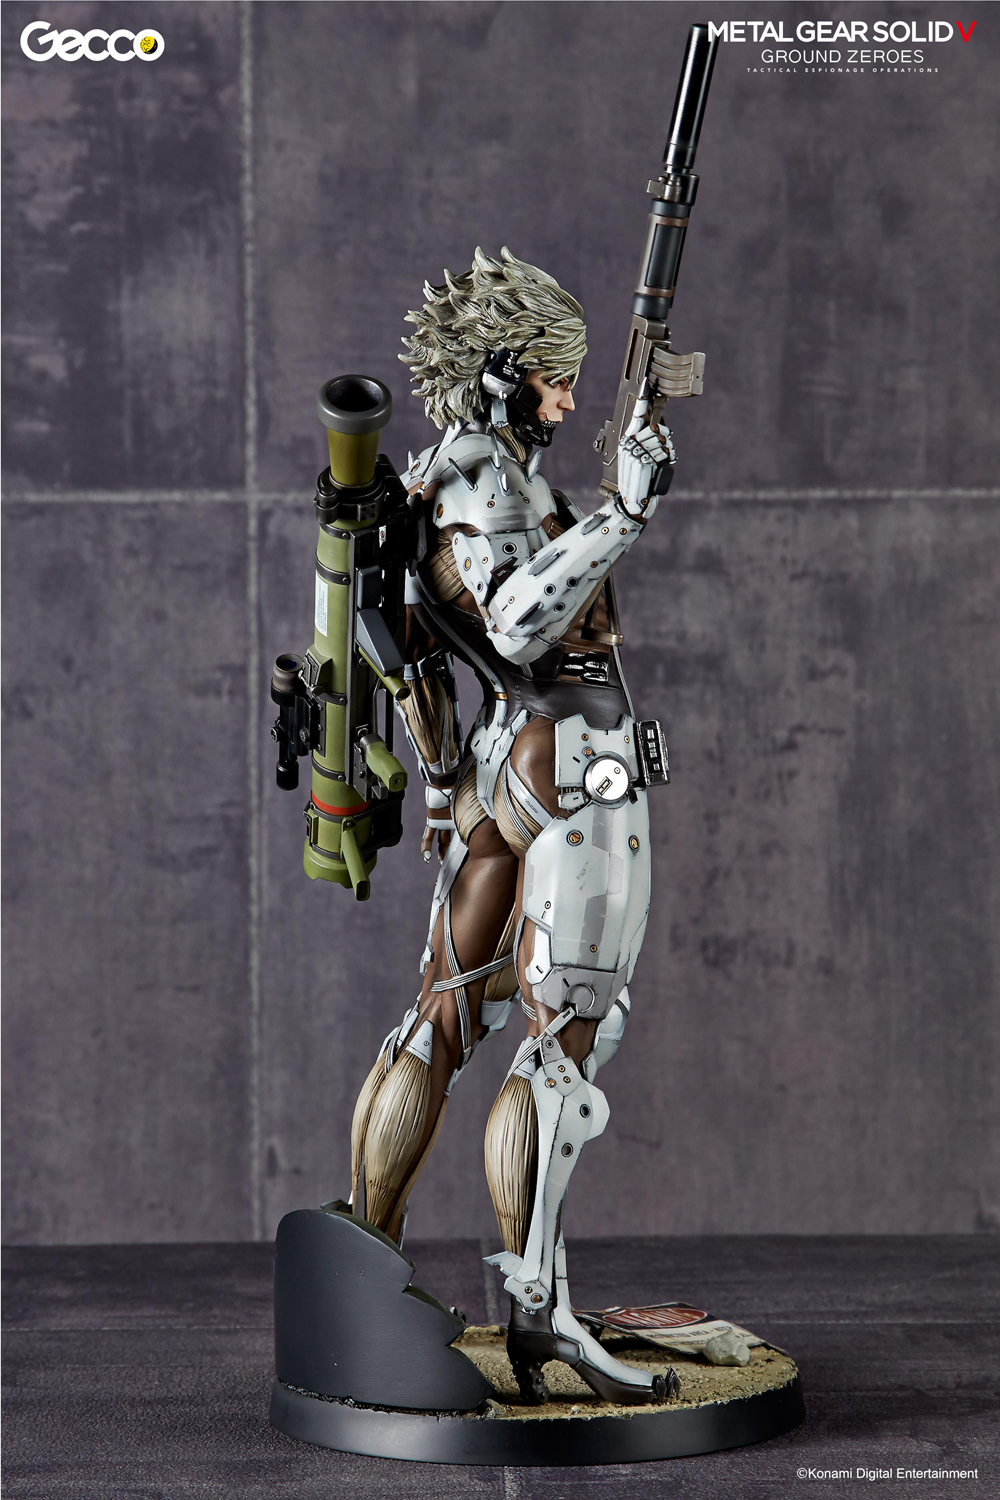 White-Raiden-Gecco-4